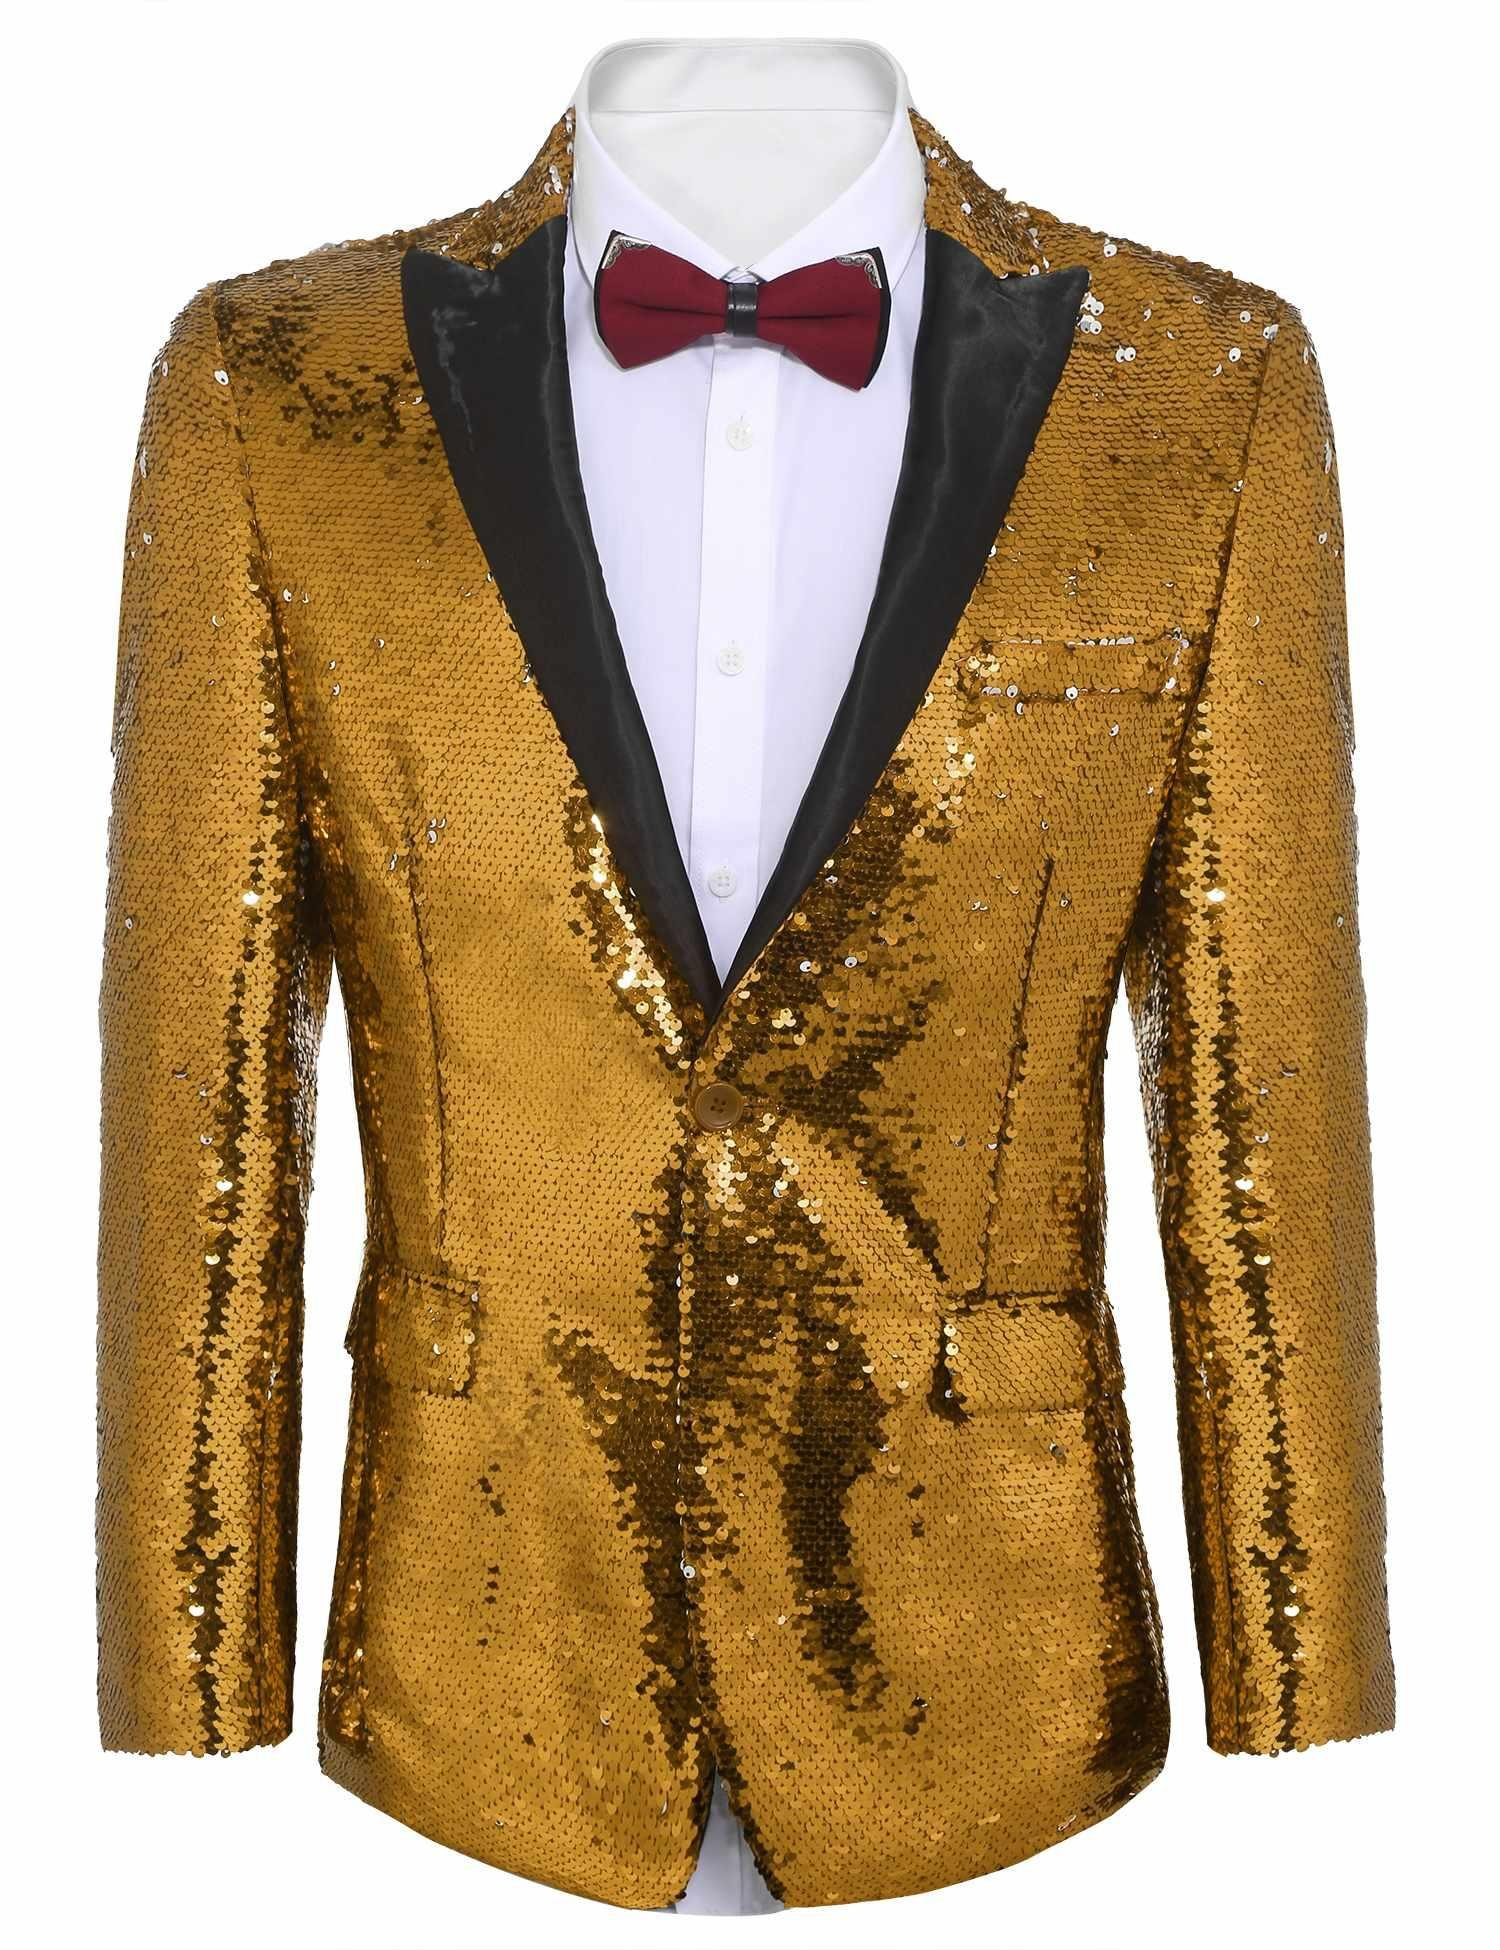 COOFANDY Shiny Sequins Suit Jacket Blazer One Button Tuxedo for Party,Wedding,Banquet,Christmas,Nightclub